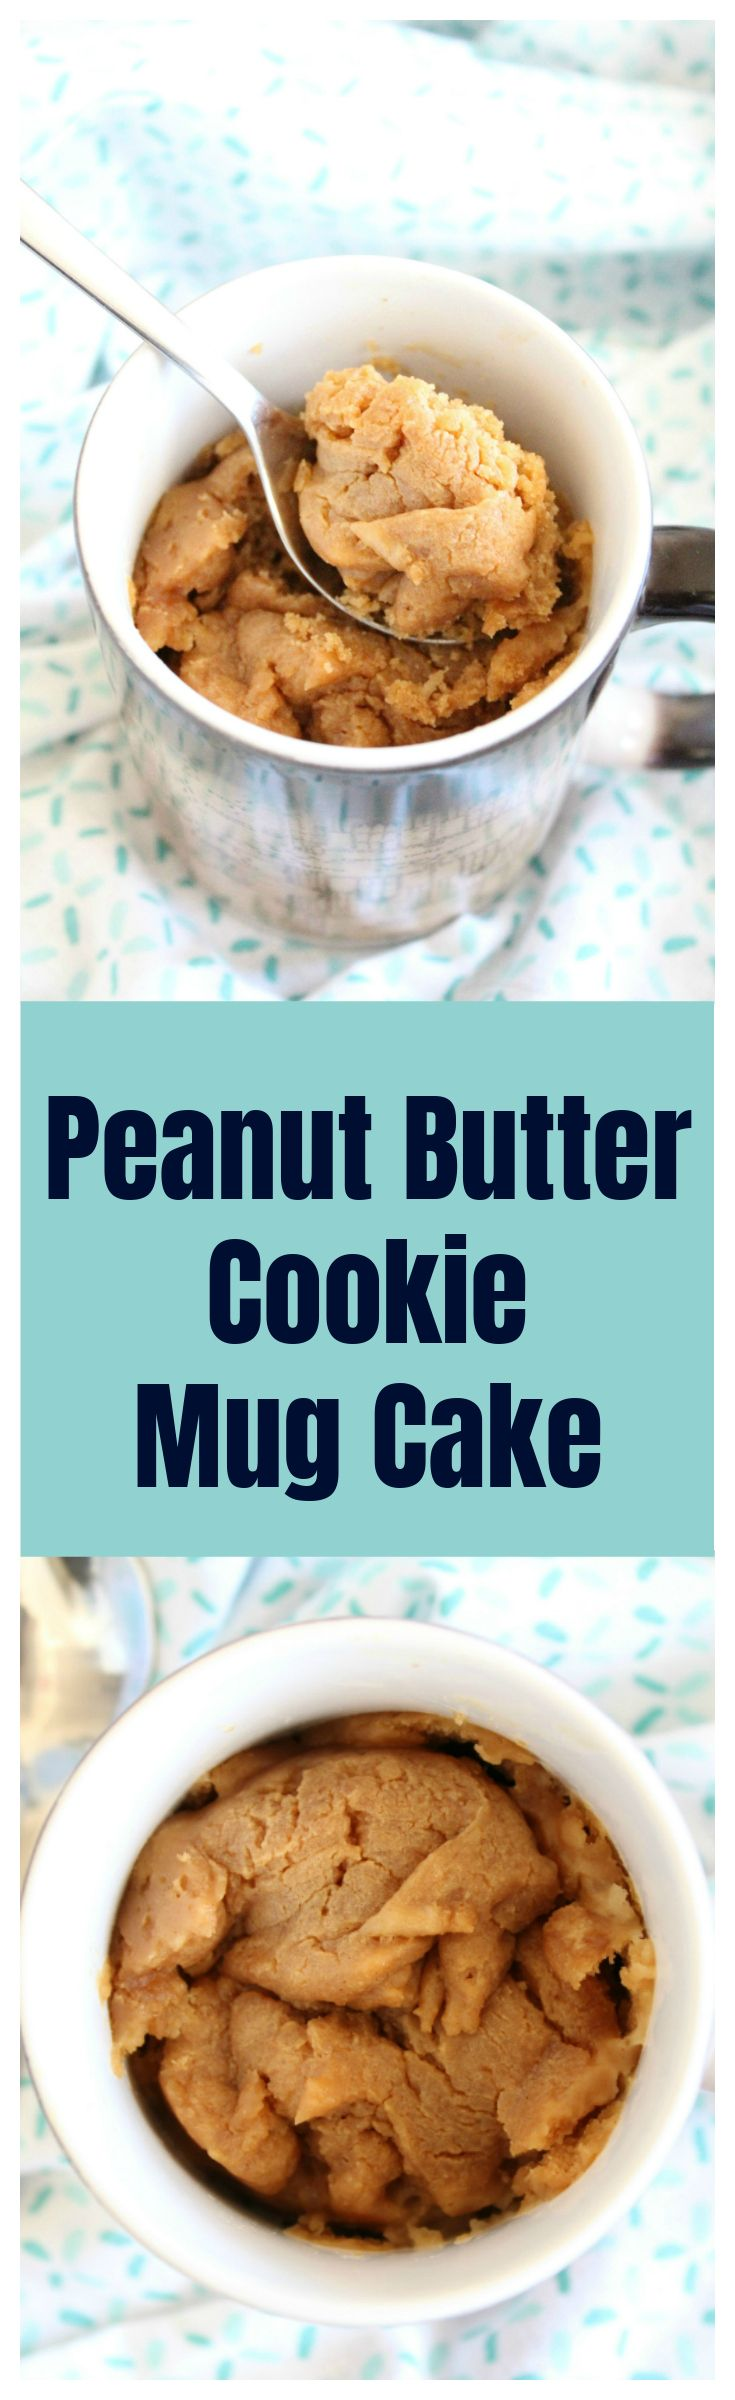 Peanut Butter Cookie Mug Cake – This mug cake takes just a few minutes and tastes just like a peanut butter cookie! Perfect for when you just want a single serving of a dessert!